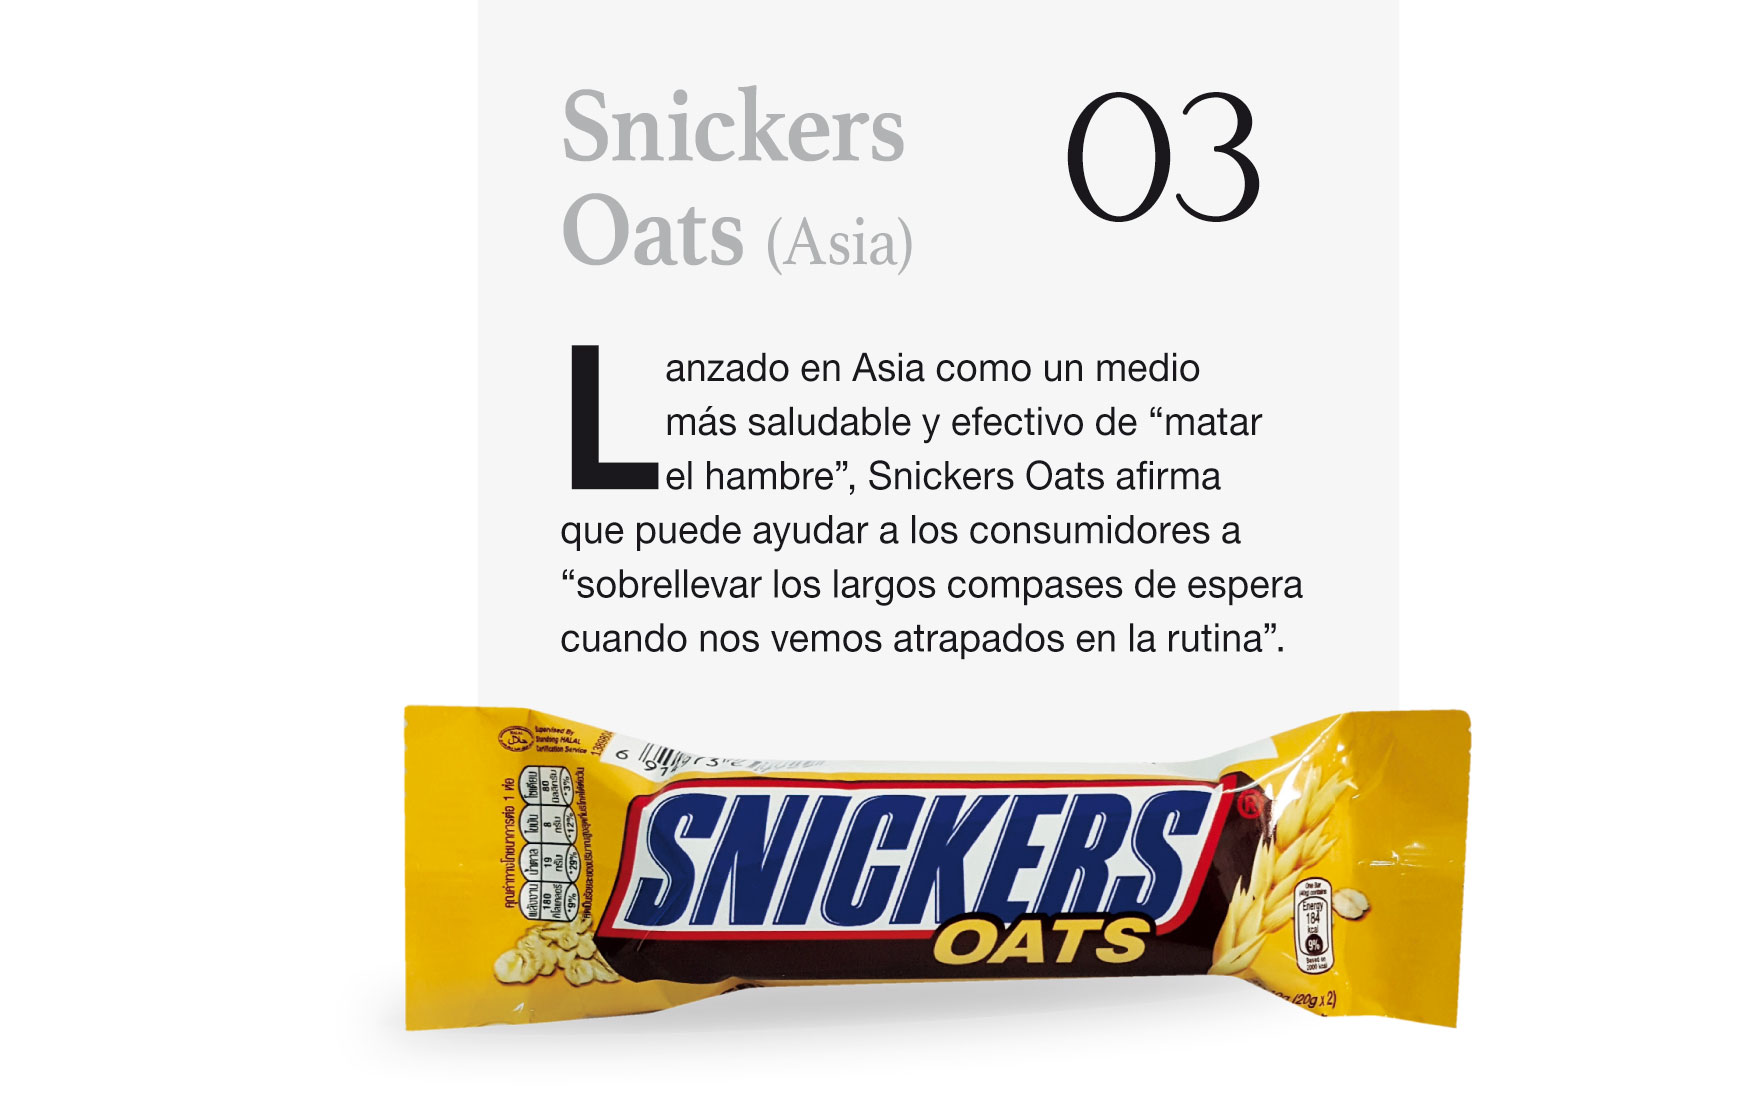 Snickers Oats (Asia)